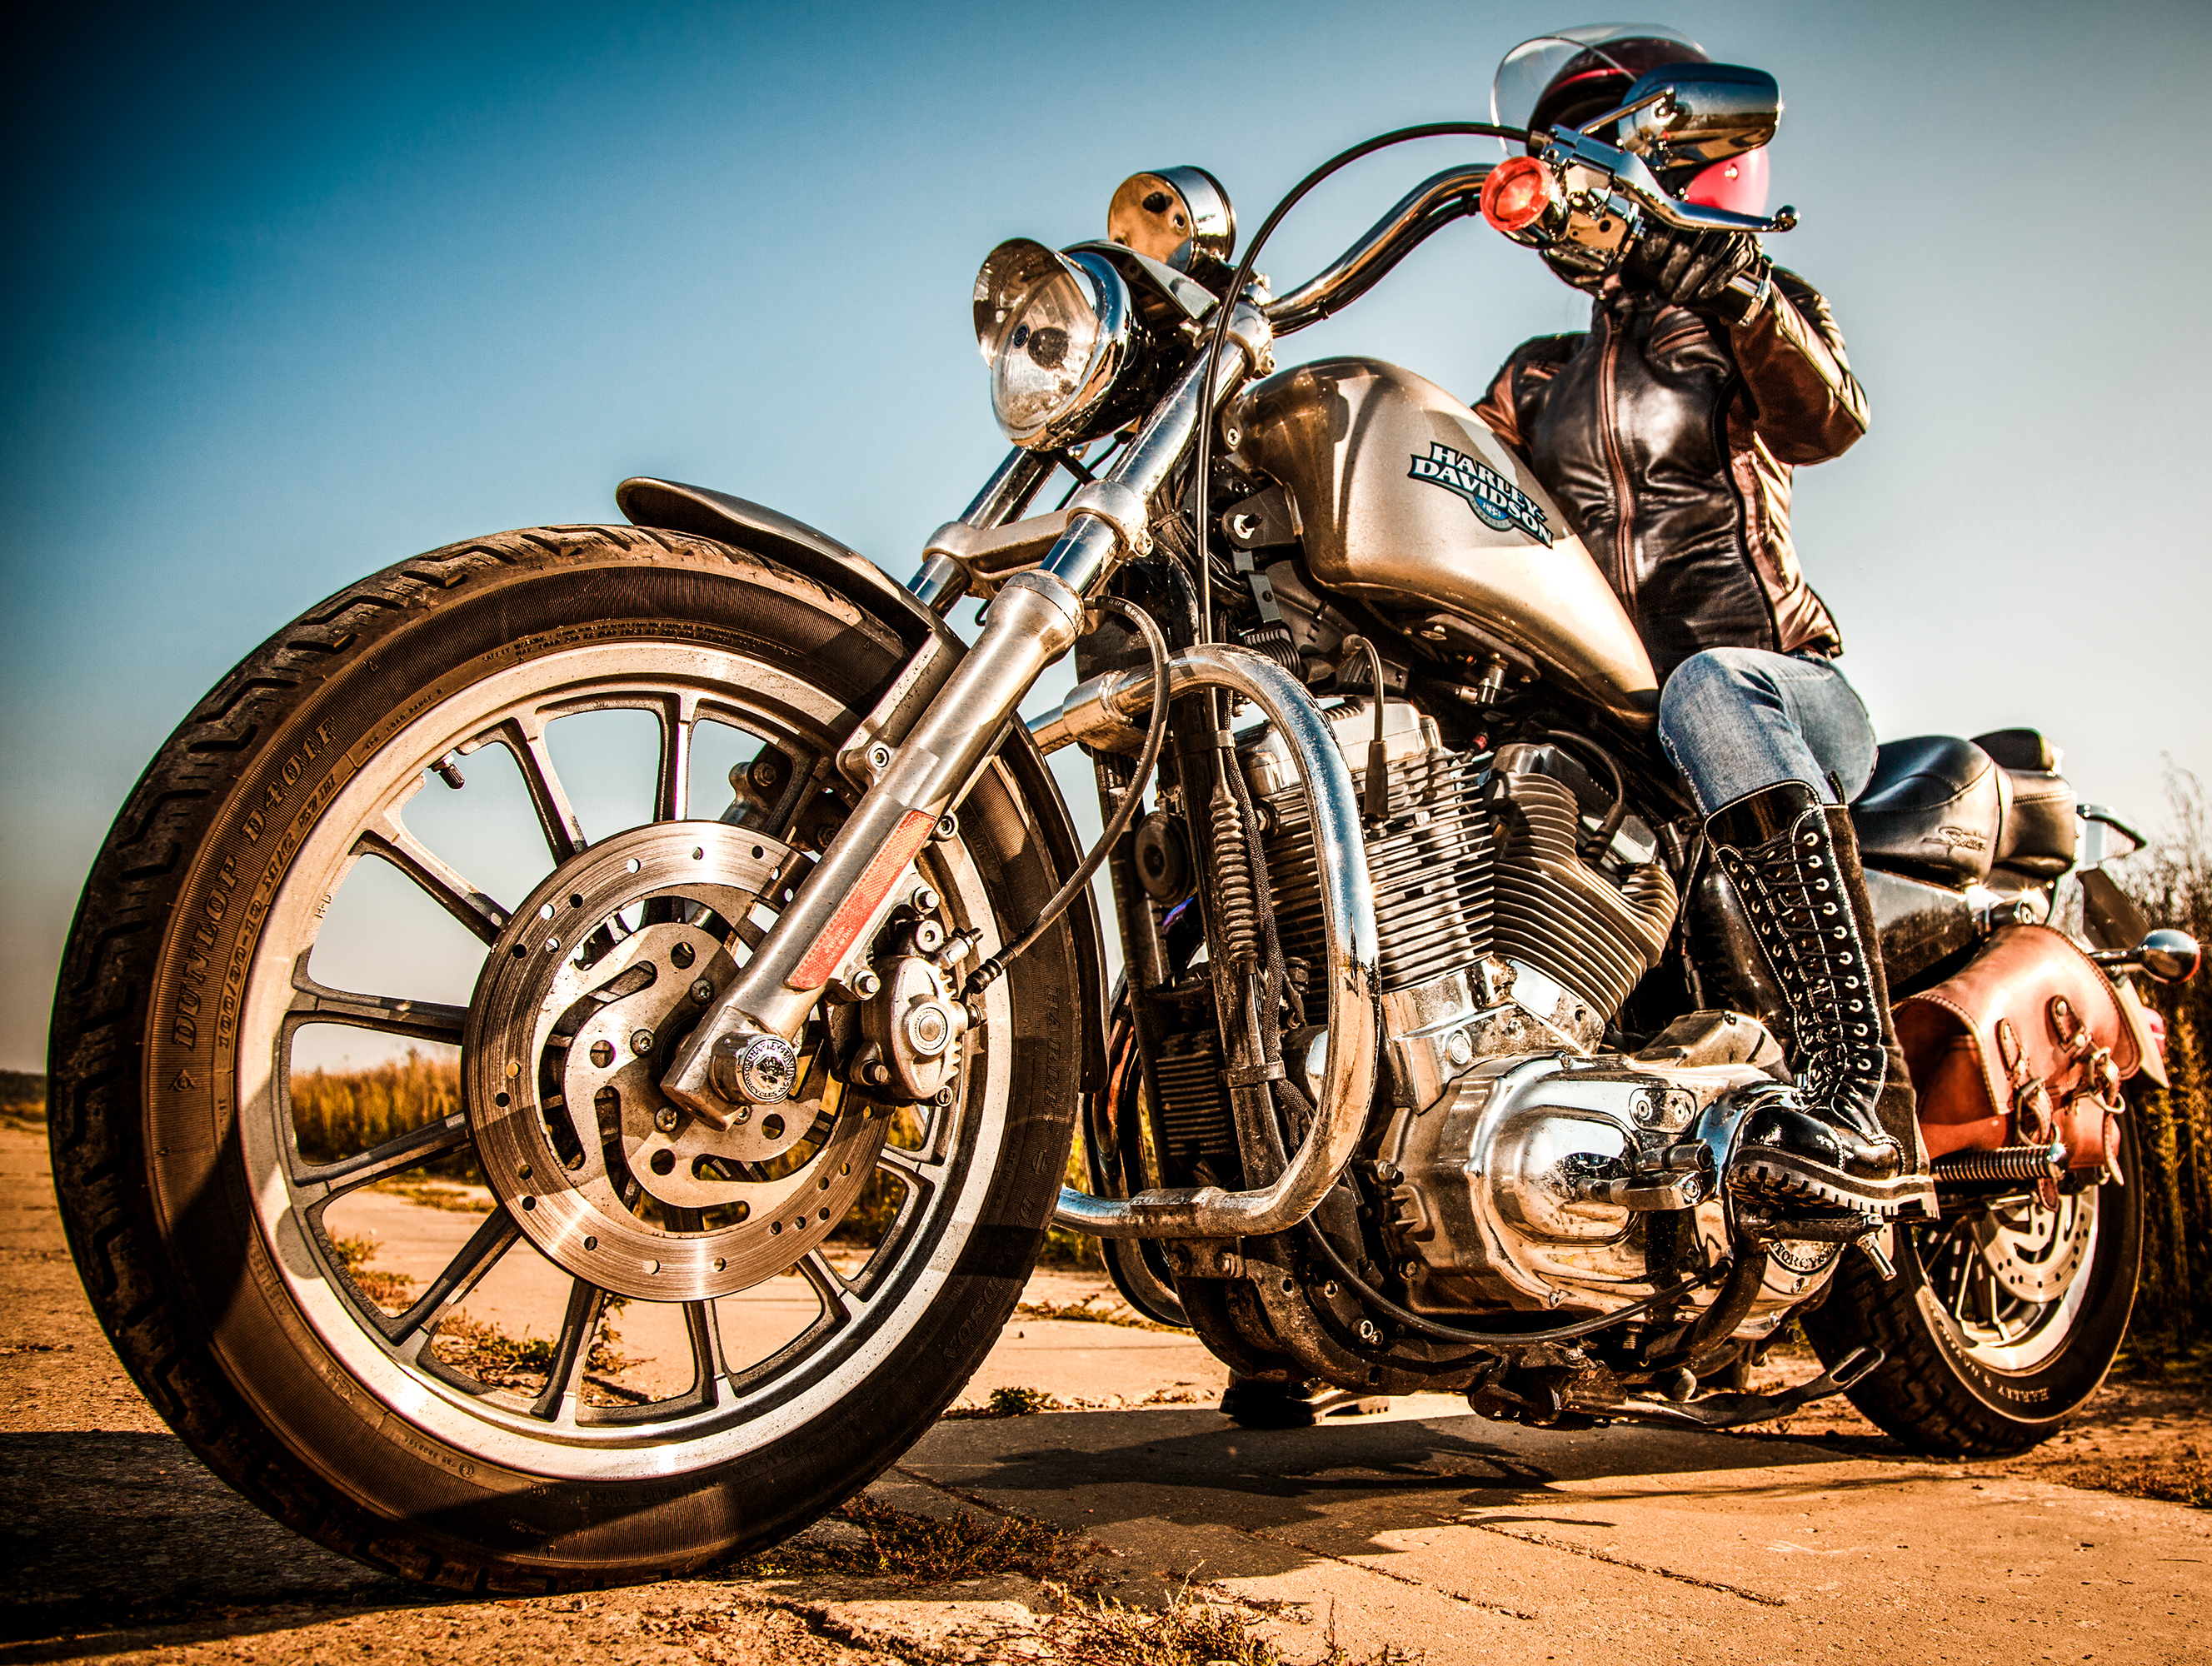 harley-davidson sportster - review and photos